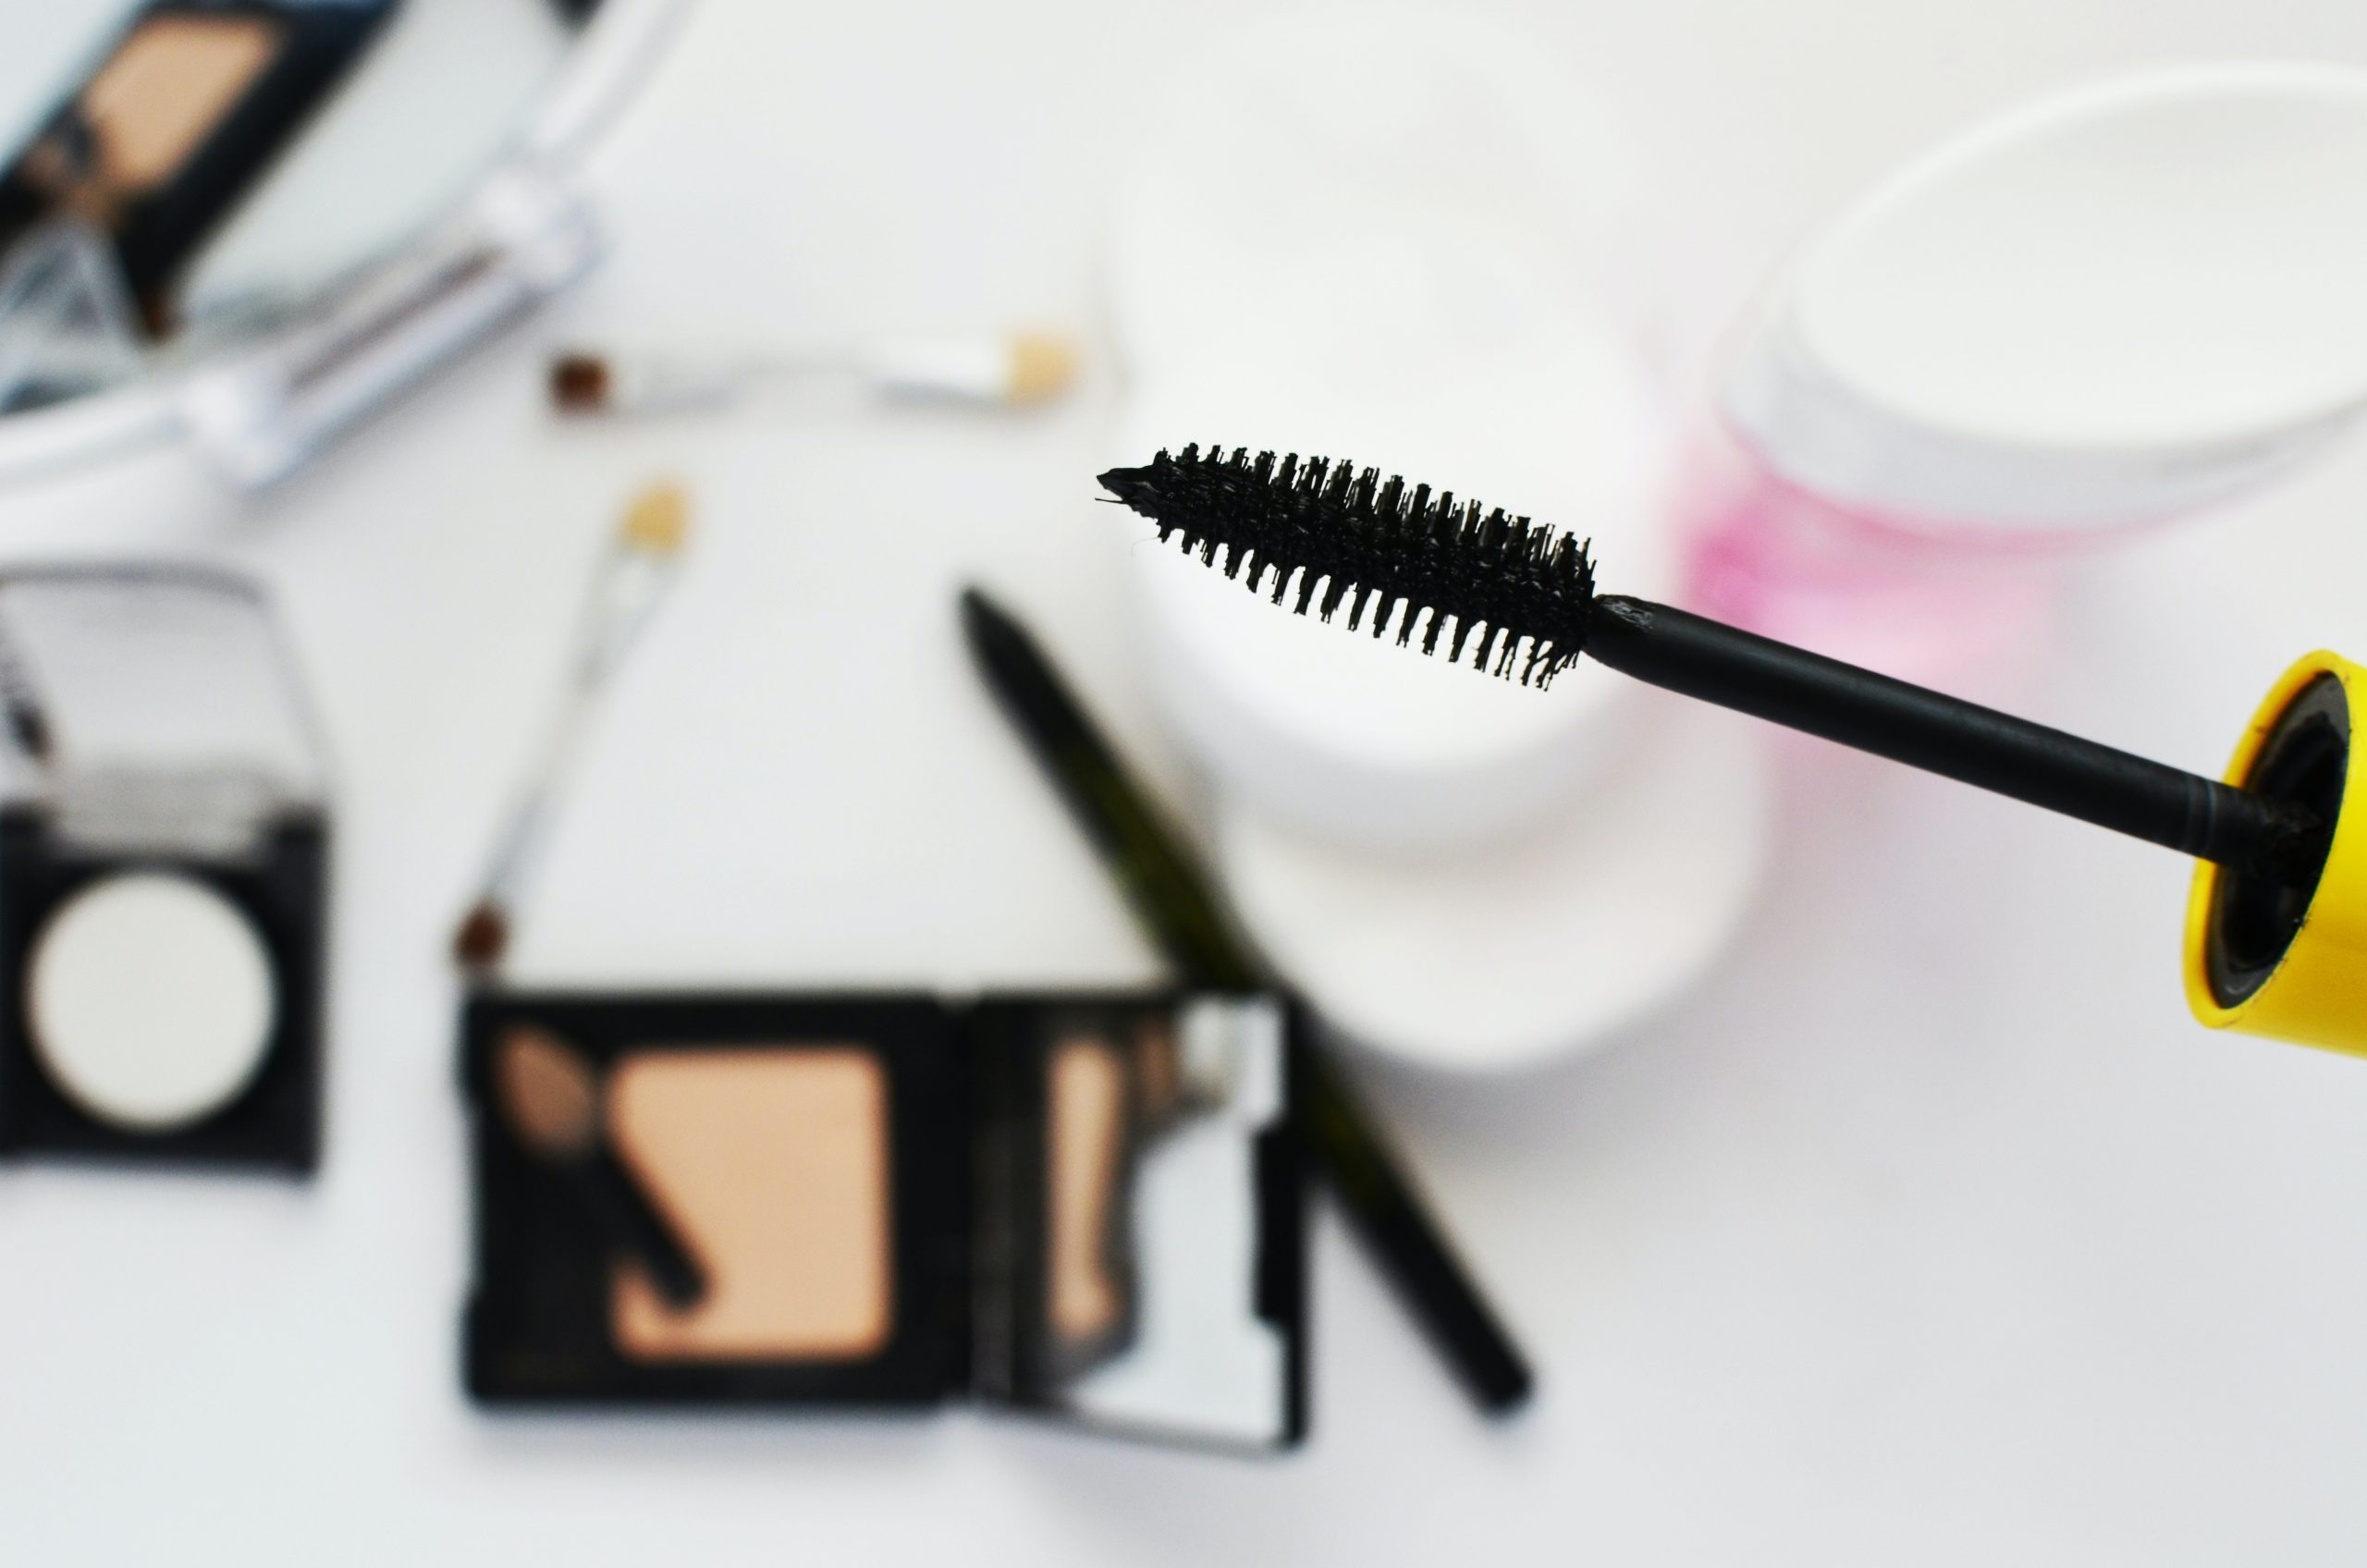 Apply Homemade Mascara in Baby's Eyes, Learn How to Make Mascara at Home